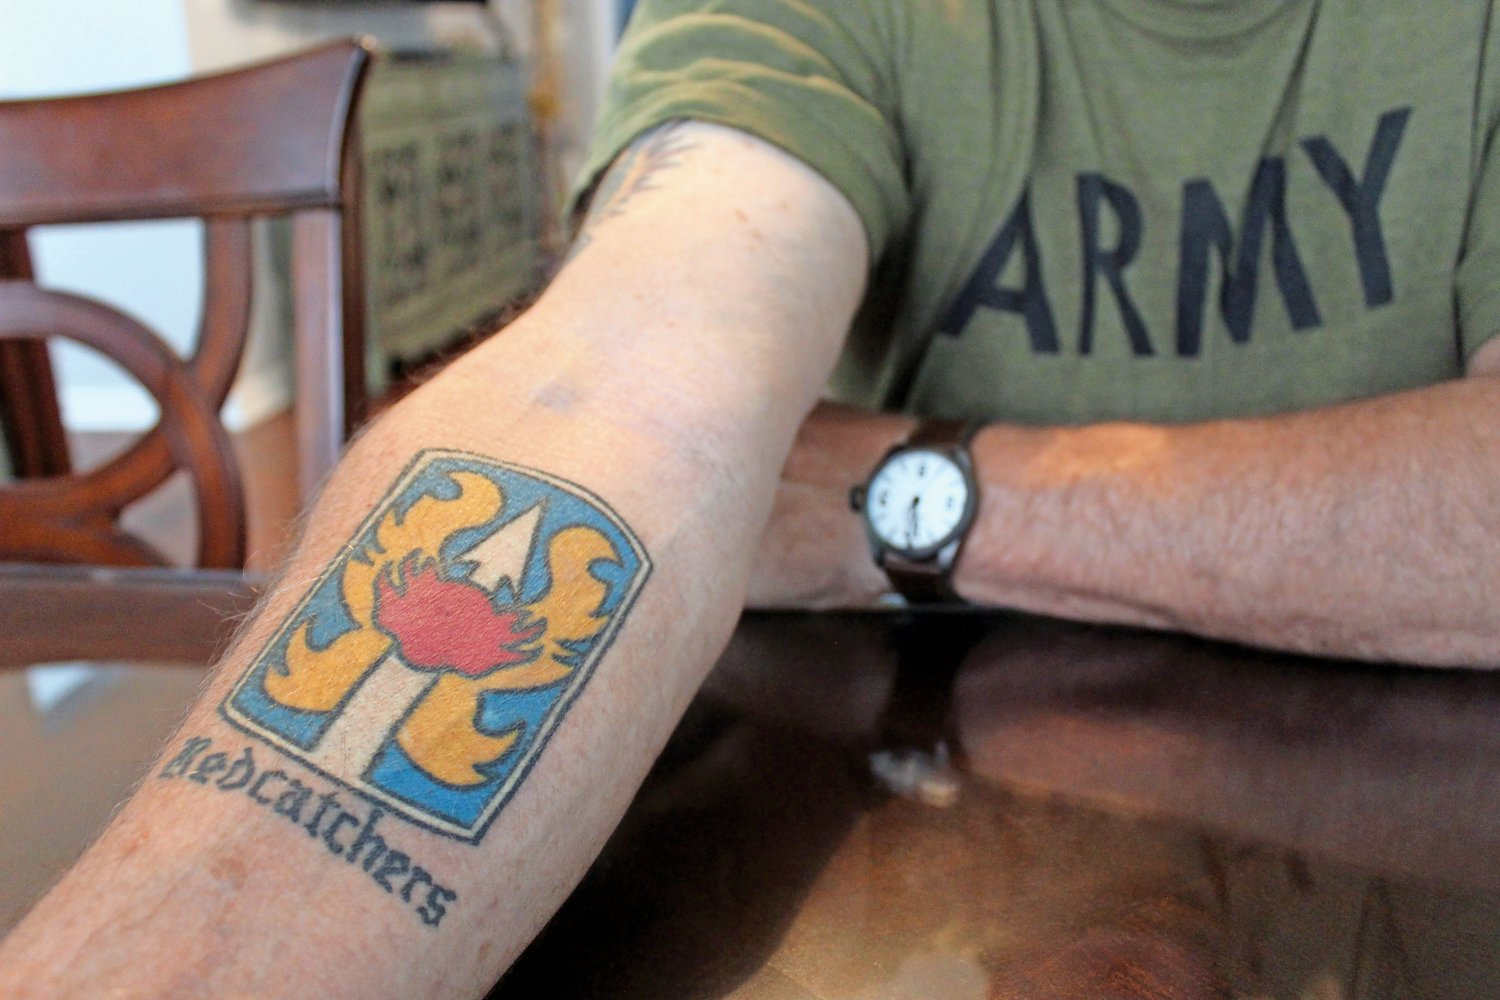 One of Jantz's tattoos is the insignia of the Army's 199th Infantry Brigade, nicknamed the Redcatchers.